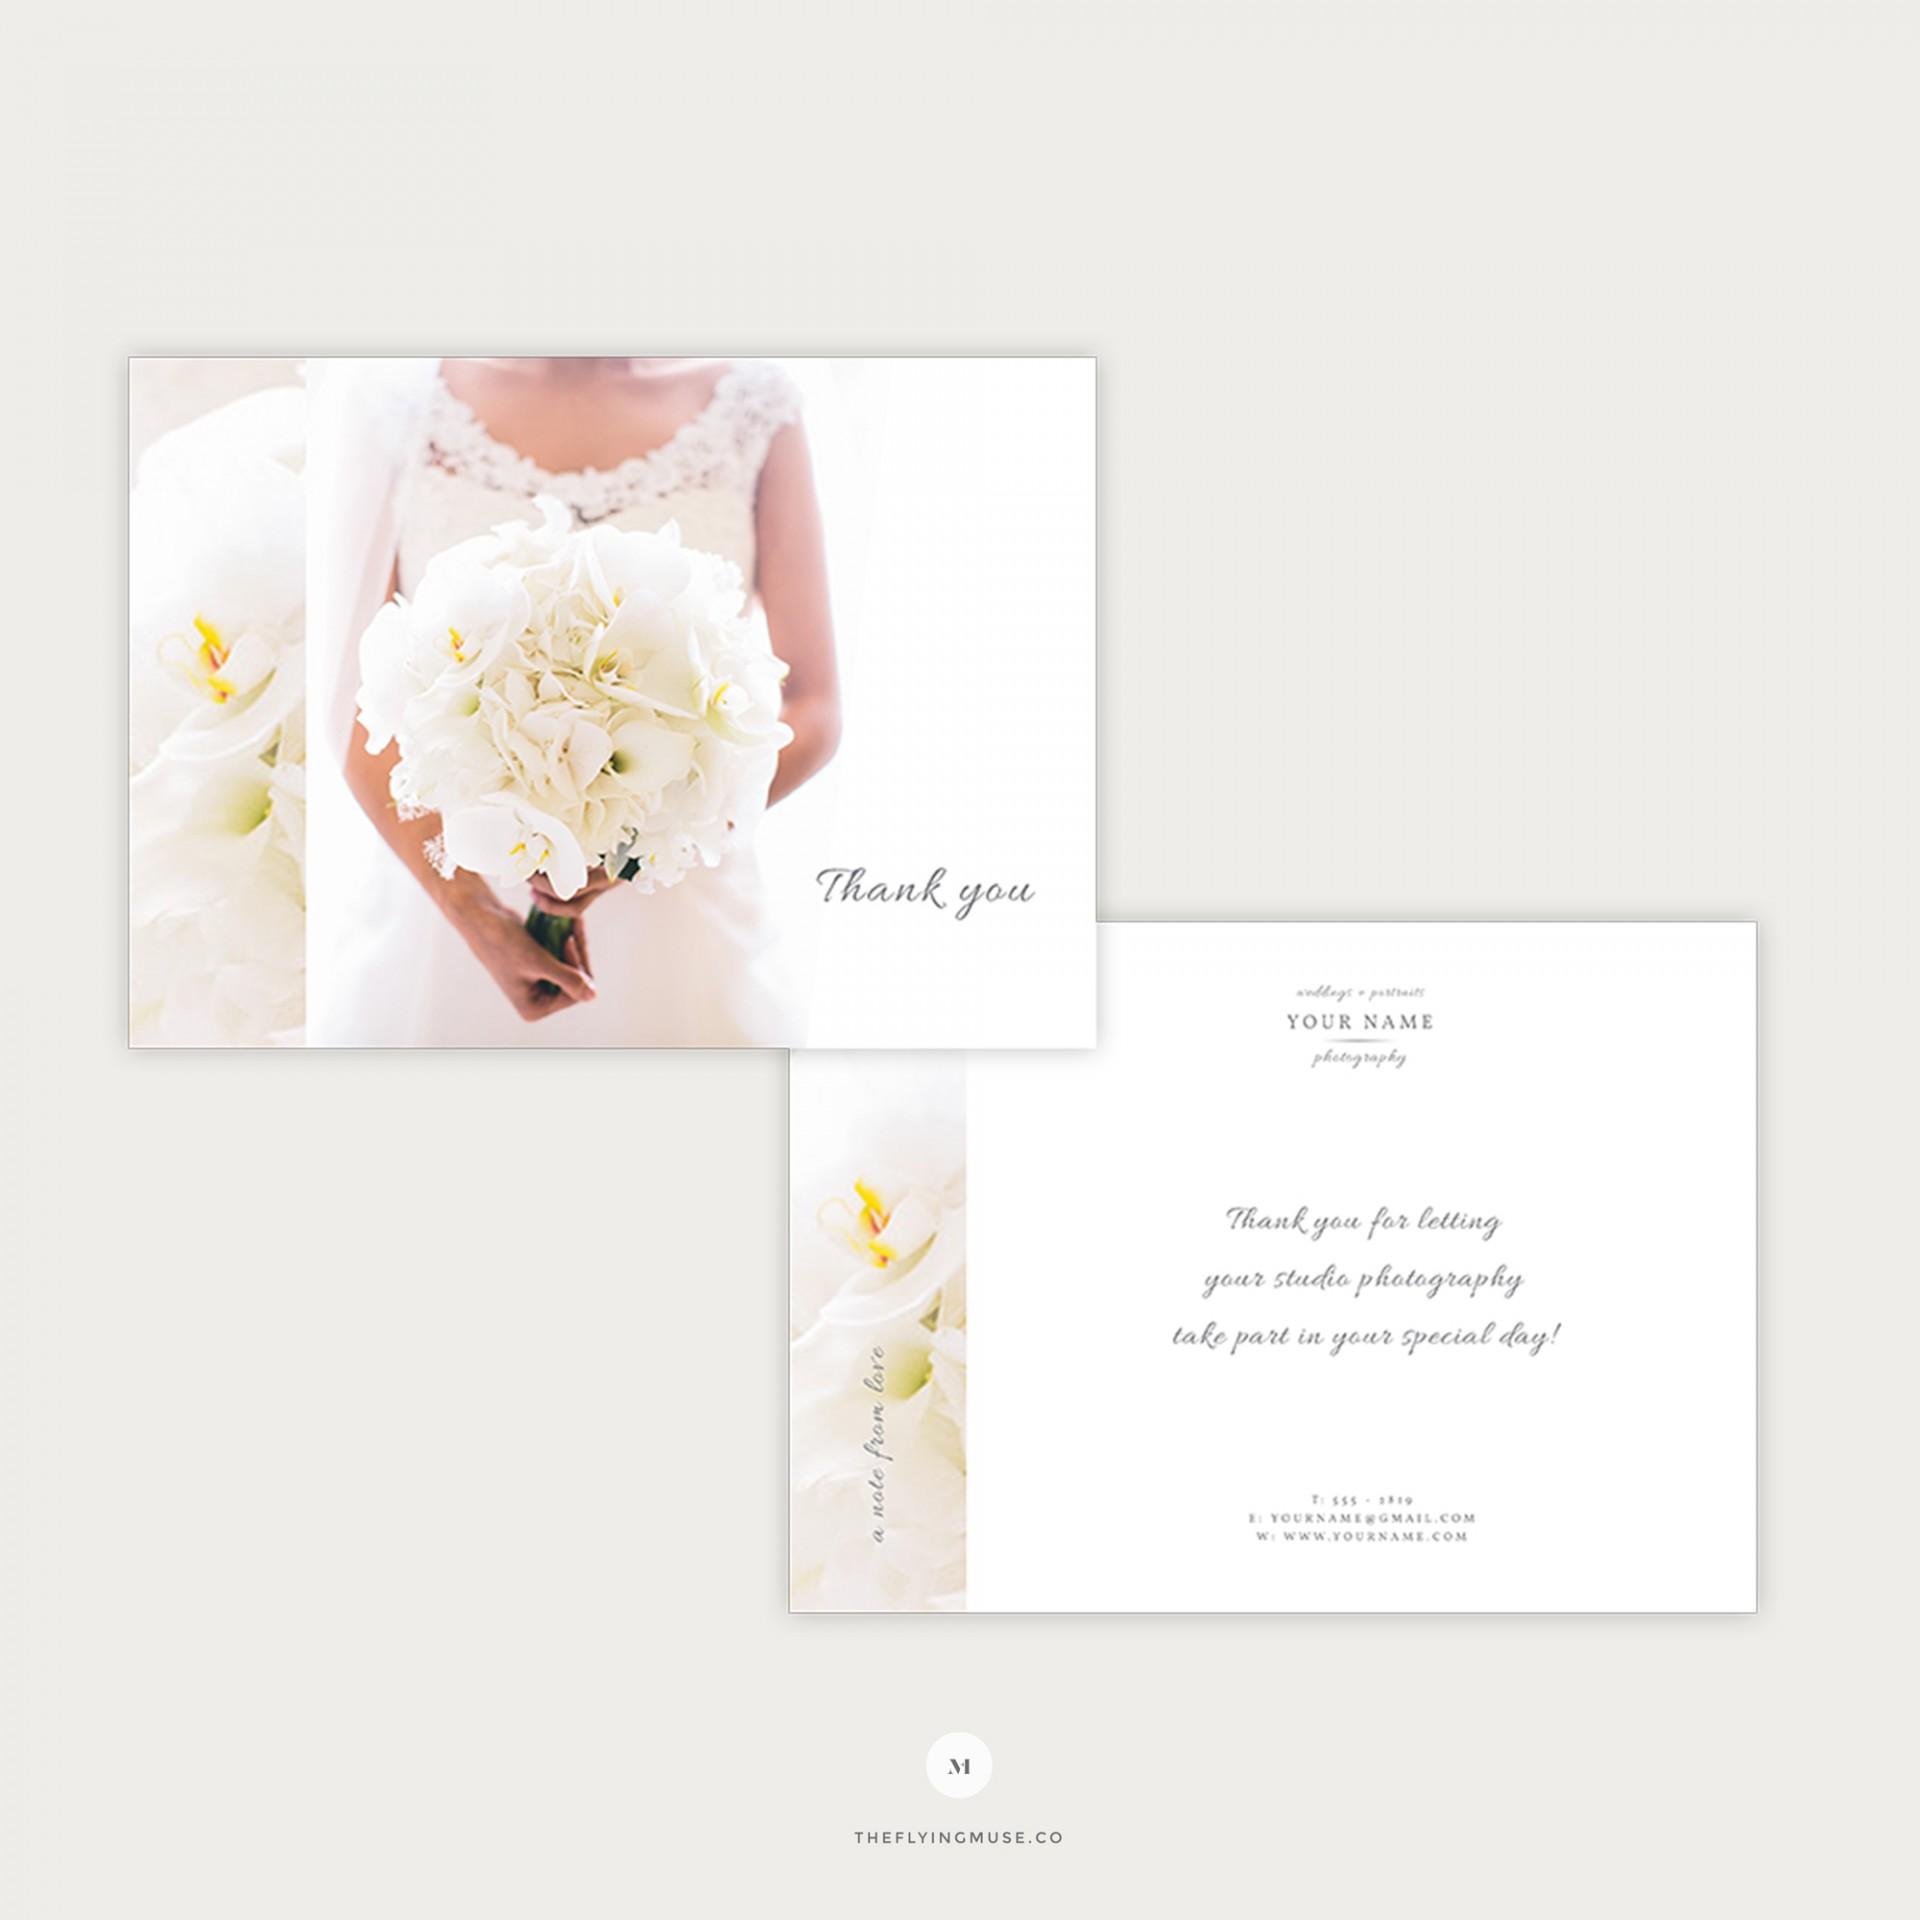 007 Striking Thank You Card Template Wedding Example  Free Printable Publisher1920